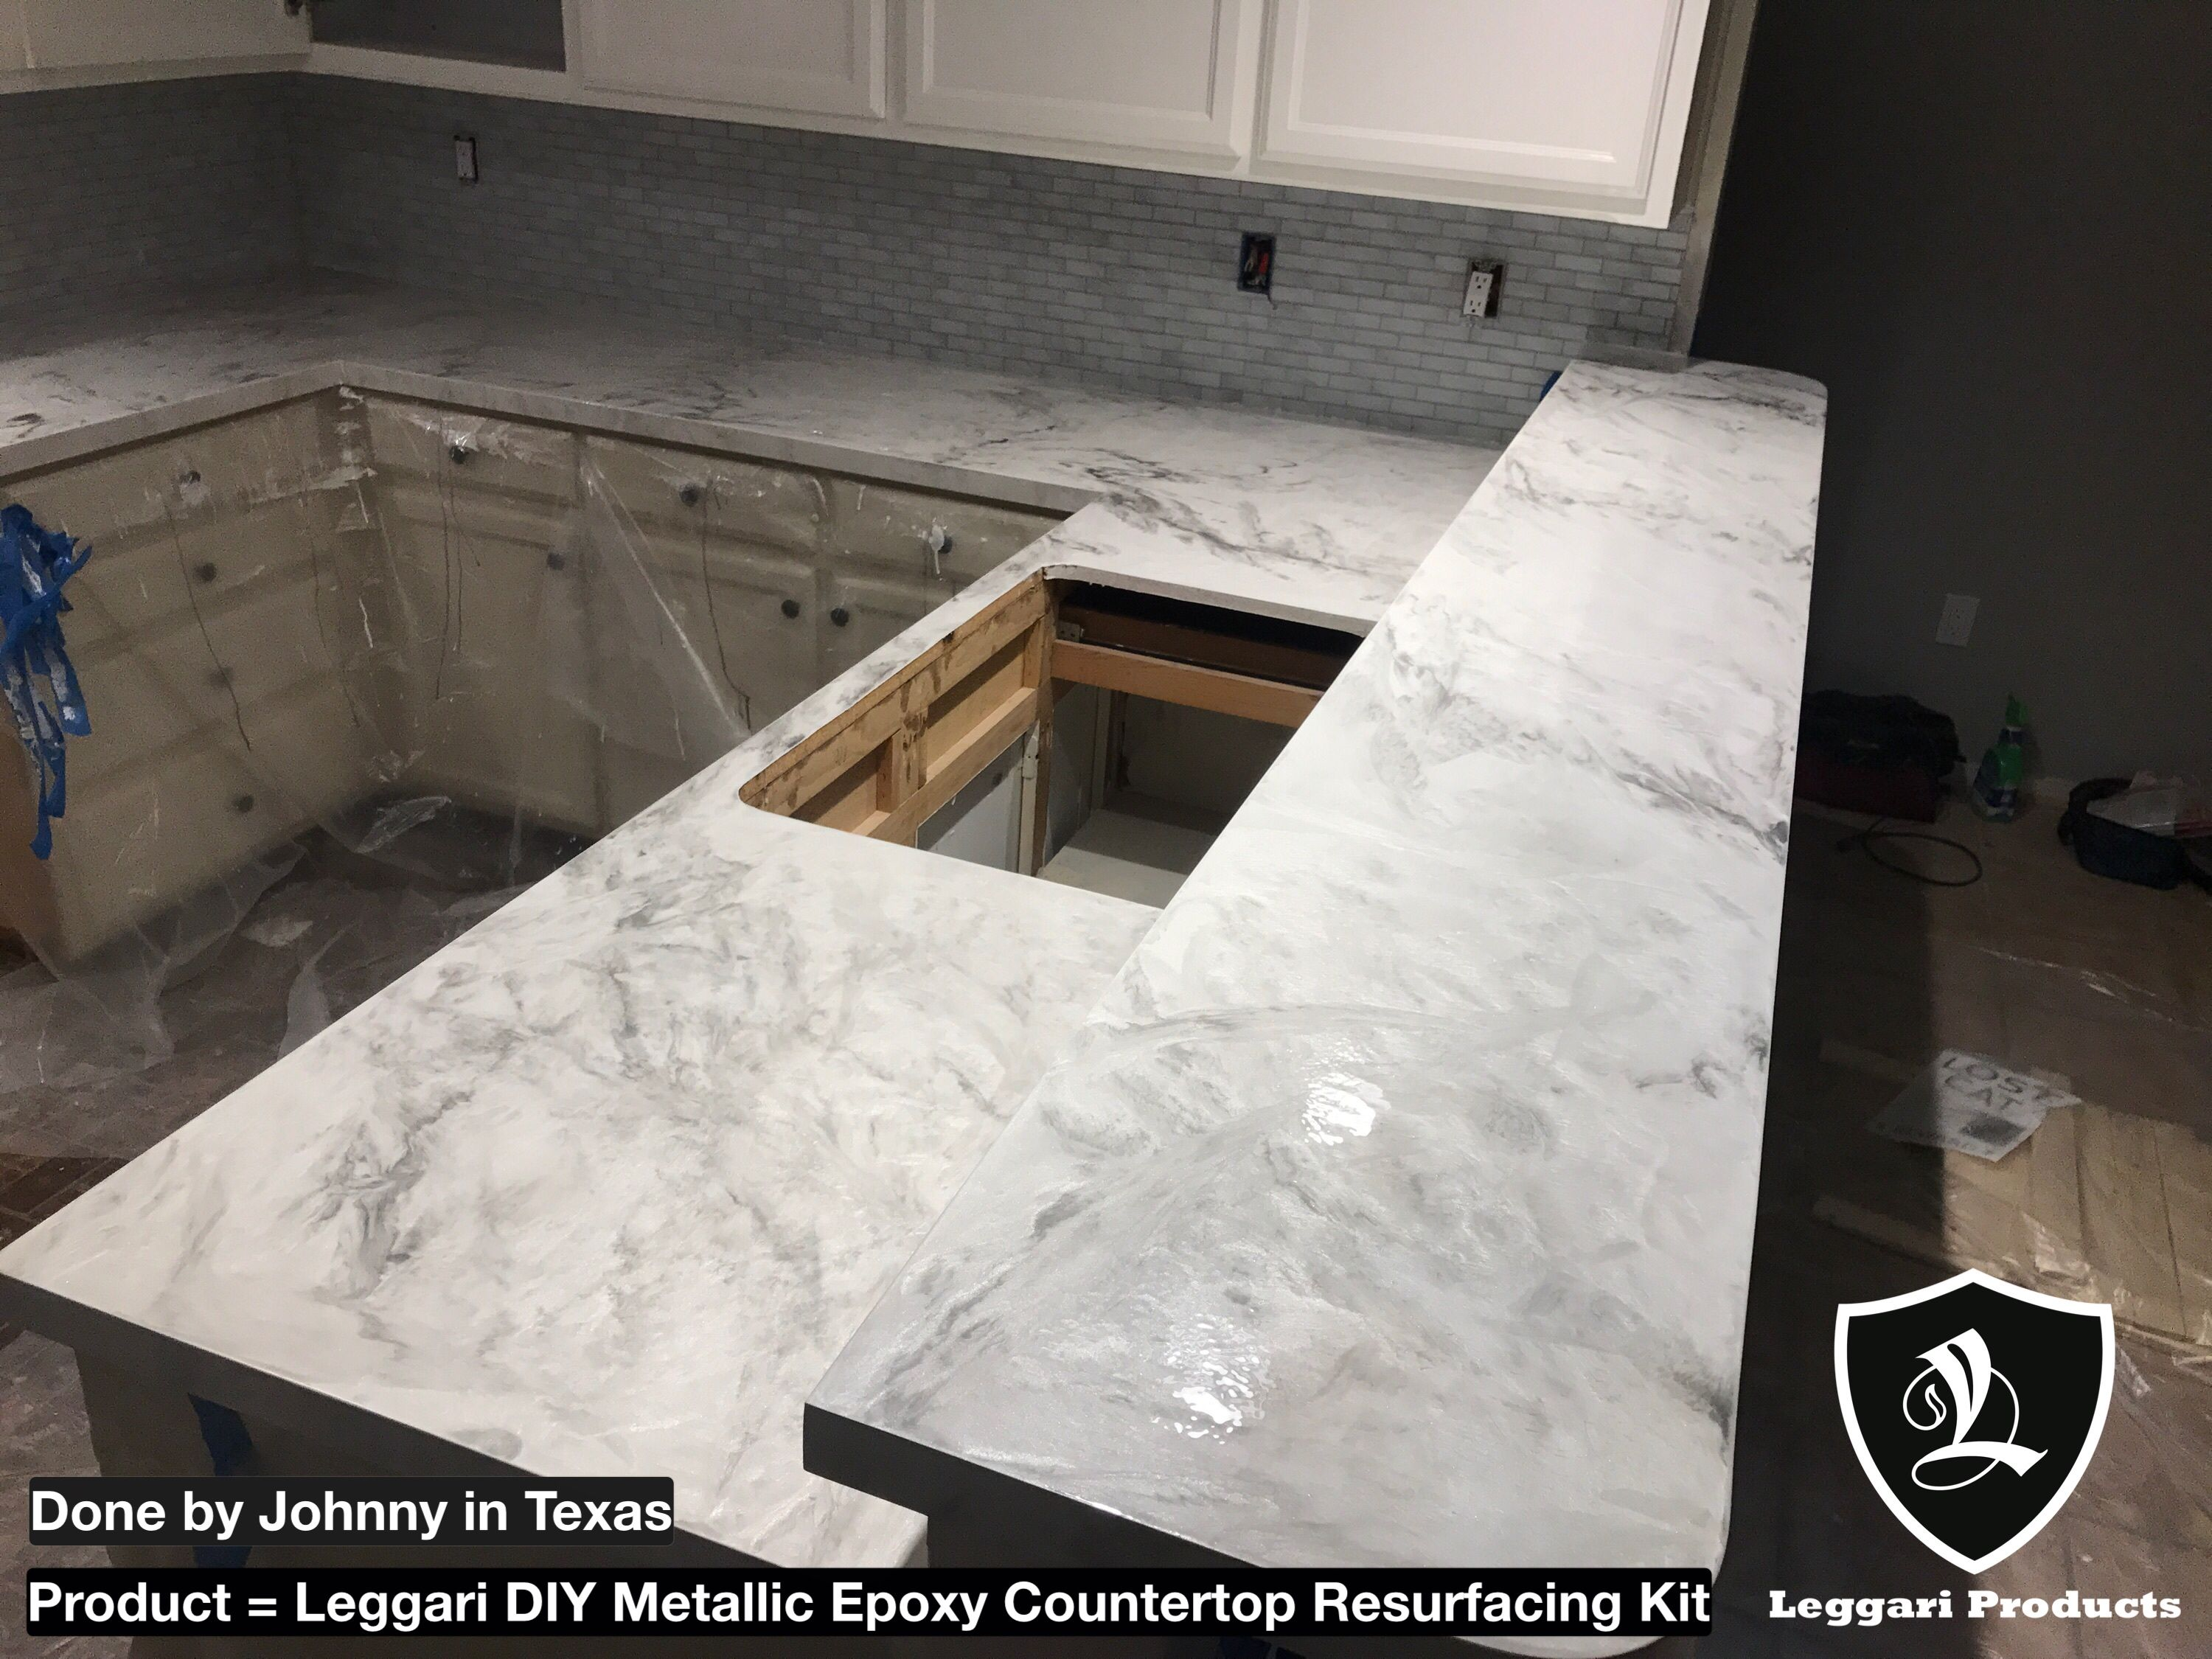 Diy White Marble Countertop Kits Right Over Your Existing Countertops Only 1 Day Install 17 Metallic Co Countertop Kit Countertops Epoxy Countertop Kit